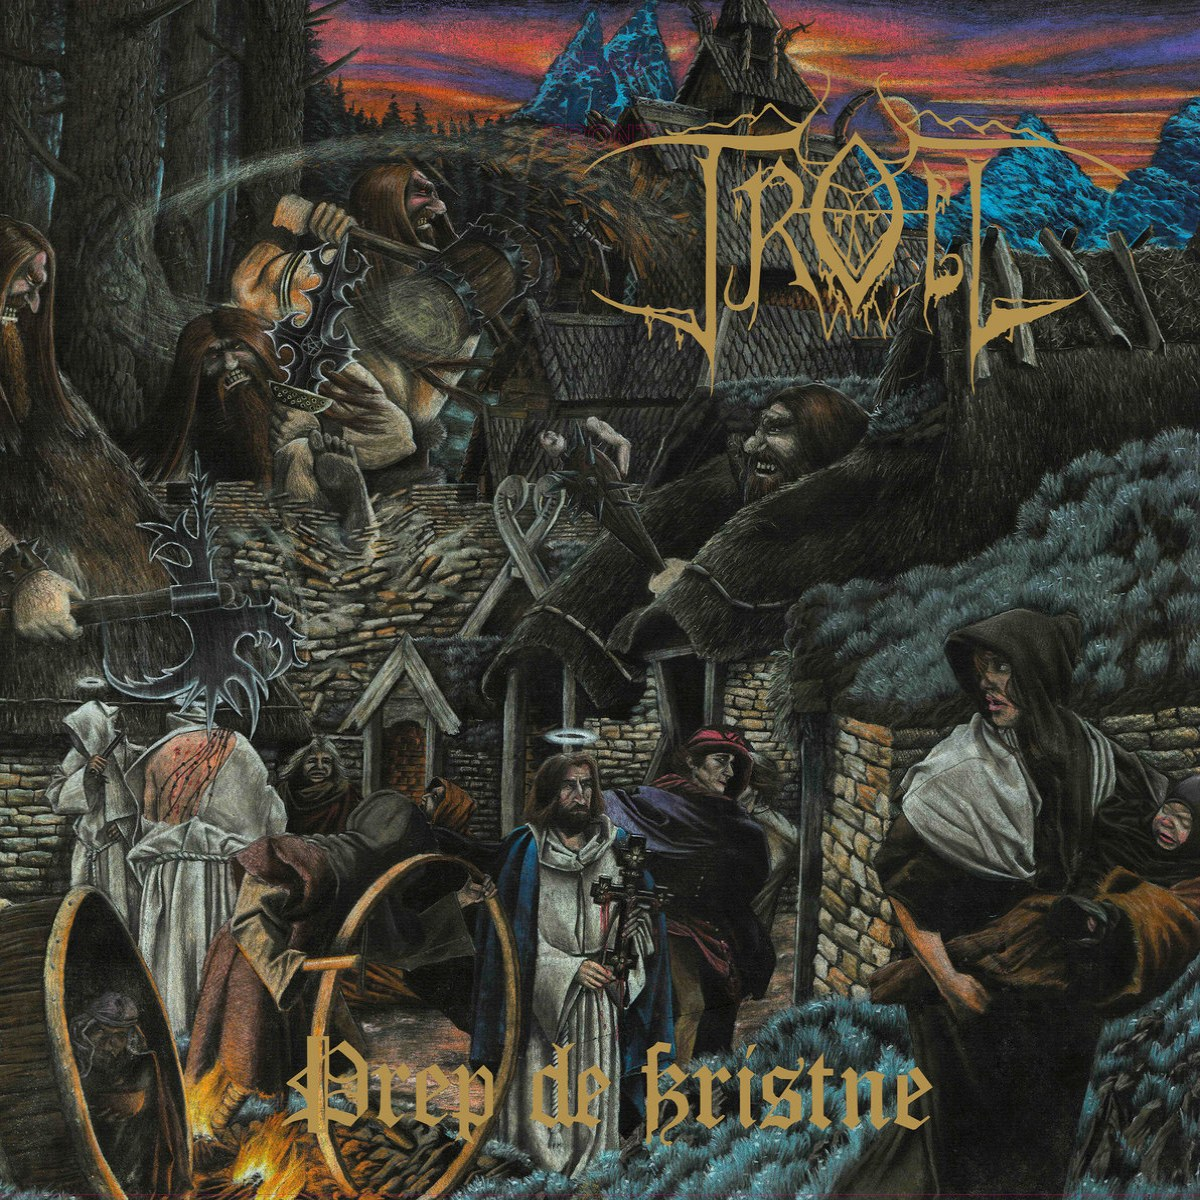 Review for Troll - Drep De Kristne